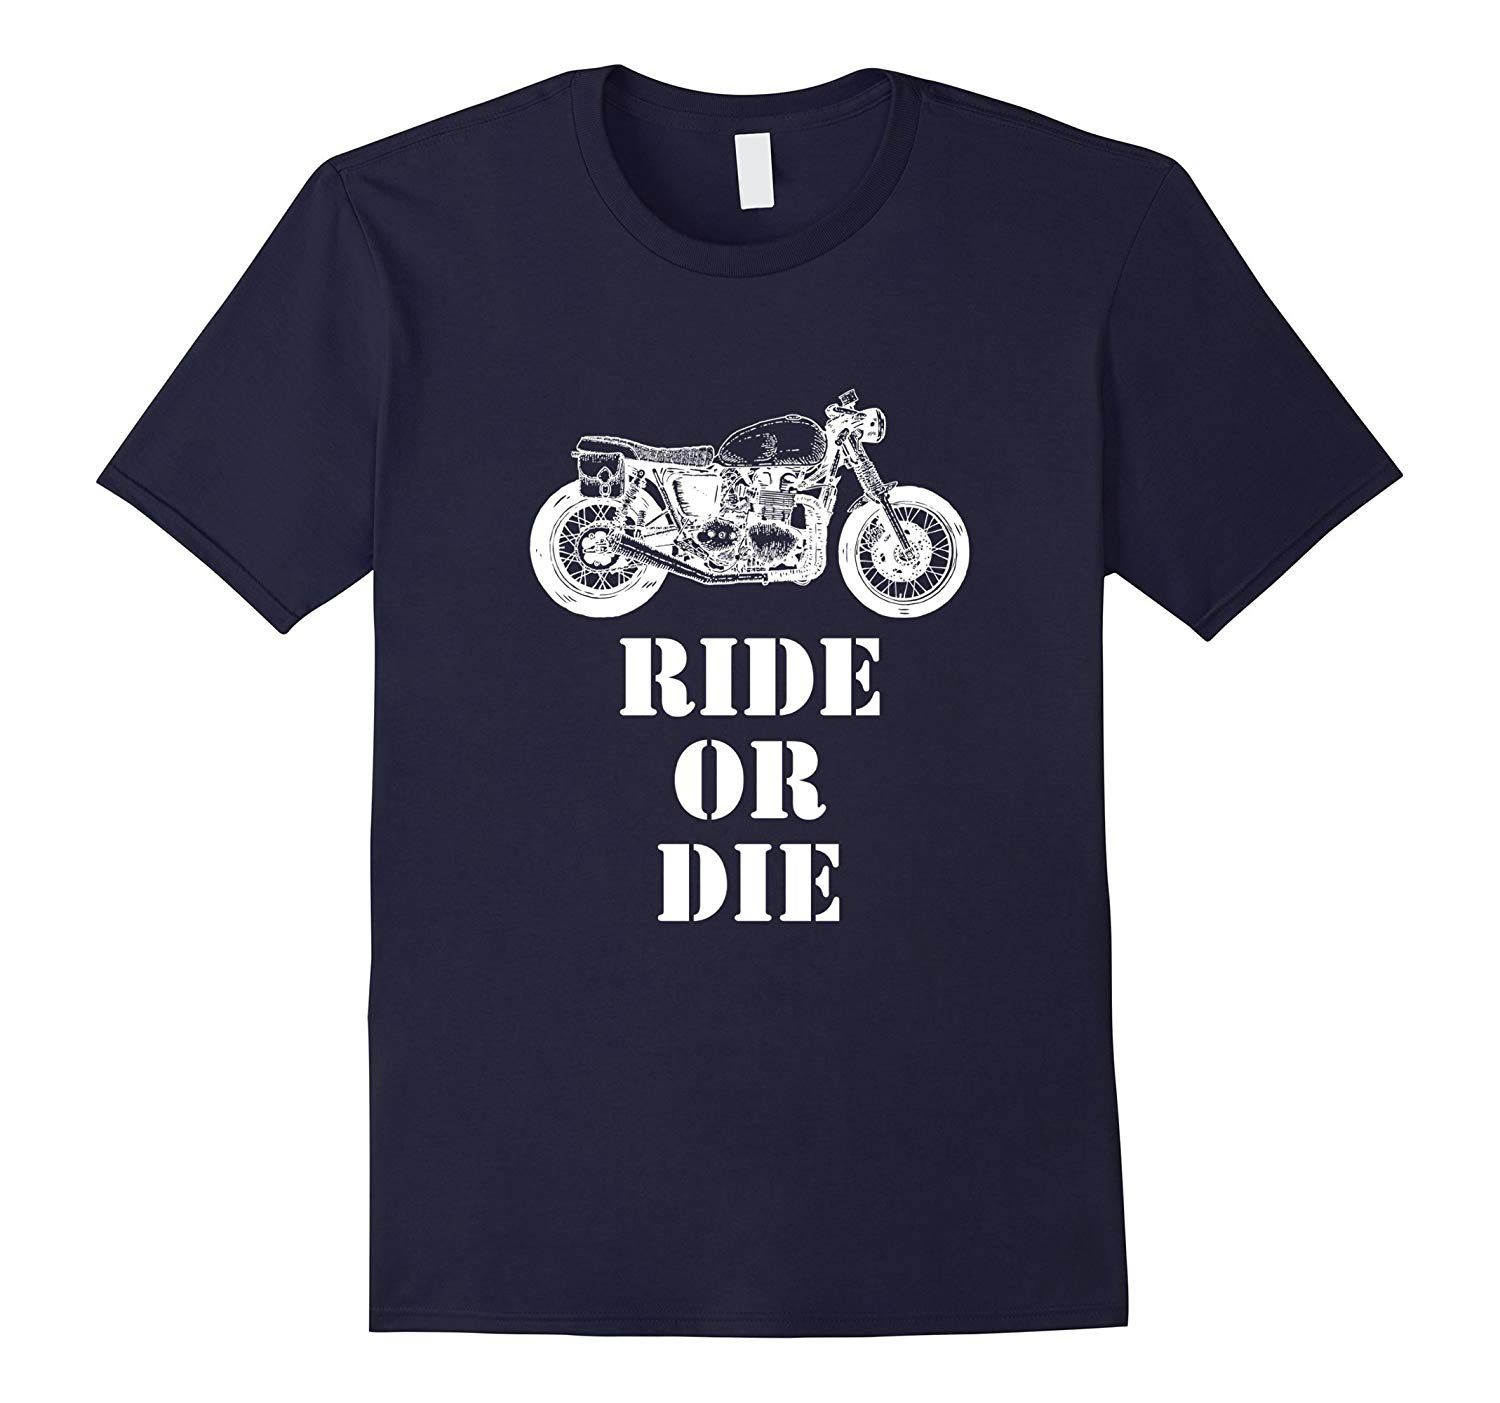 Ride Of Die Motorcycle Tee Shirt Tee Shirts Shirts Graphic Tees